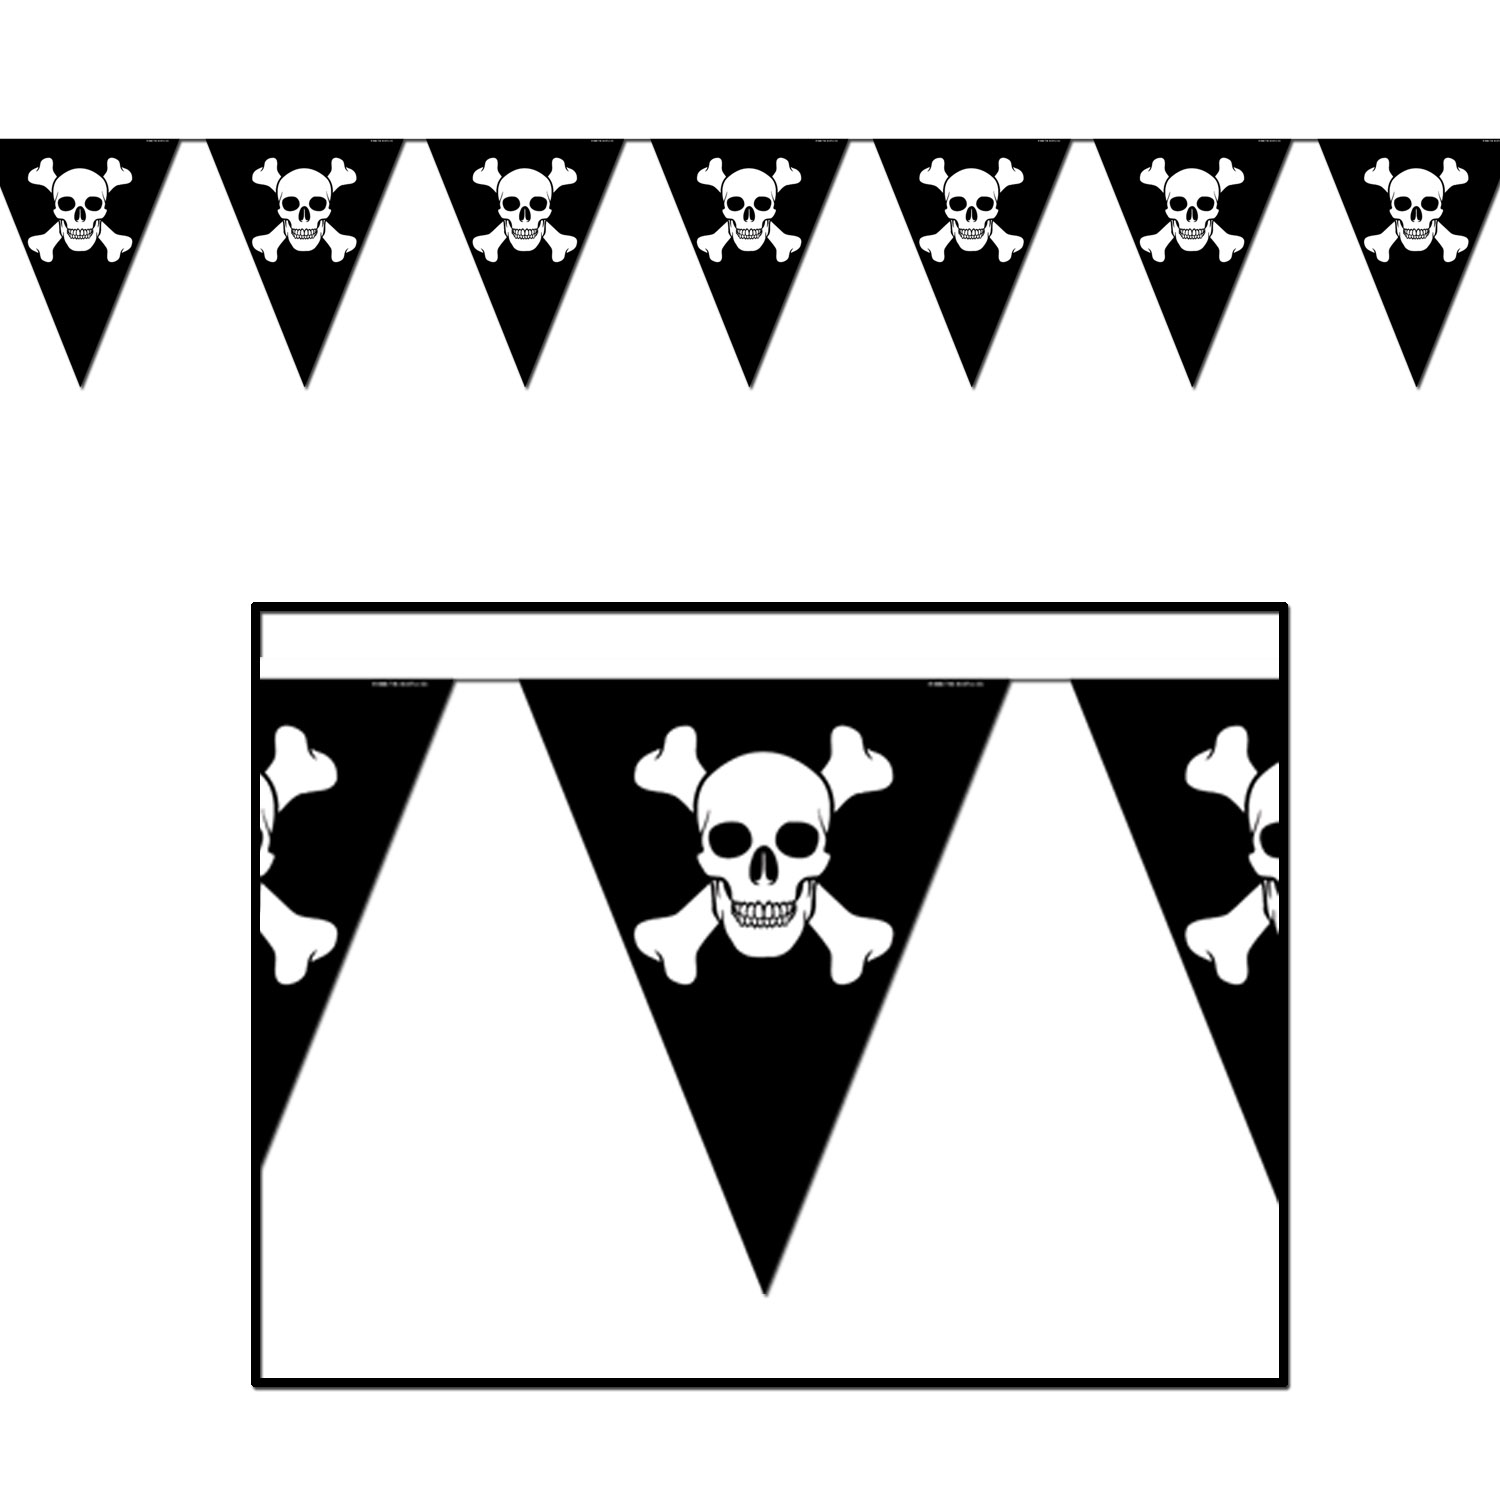 Jolly Roger Pennant Banner (Pack of 12) Pennant Banner, Jolly Roger, Skulls and Crossbones, Black and White, Birthday ideas, Pirate themed, Cheap pirate supplies, All Weather Banner, Wholesale party supplies, Inexpensive decorations